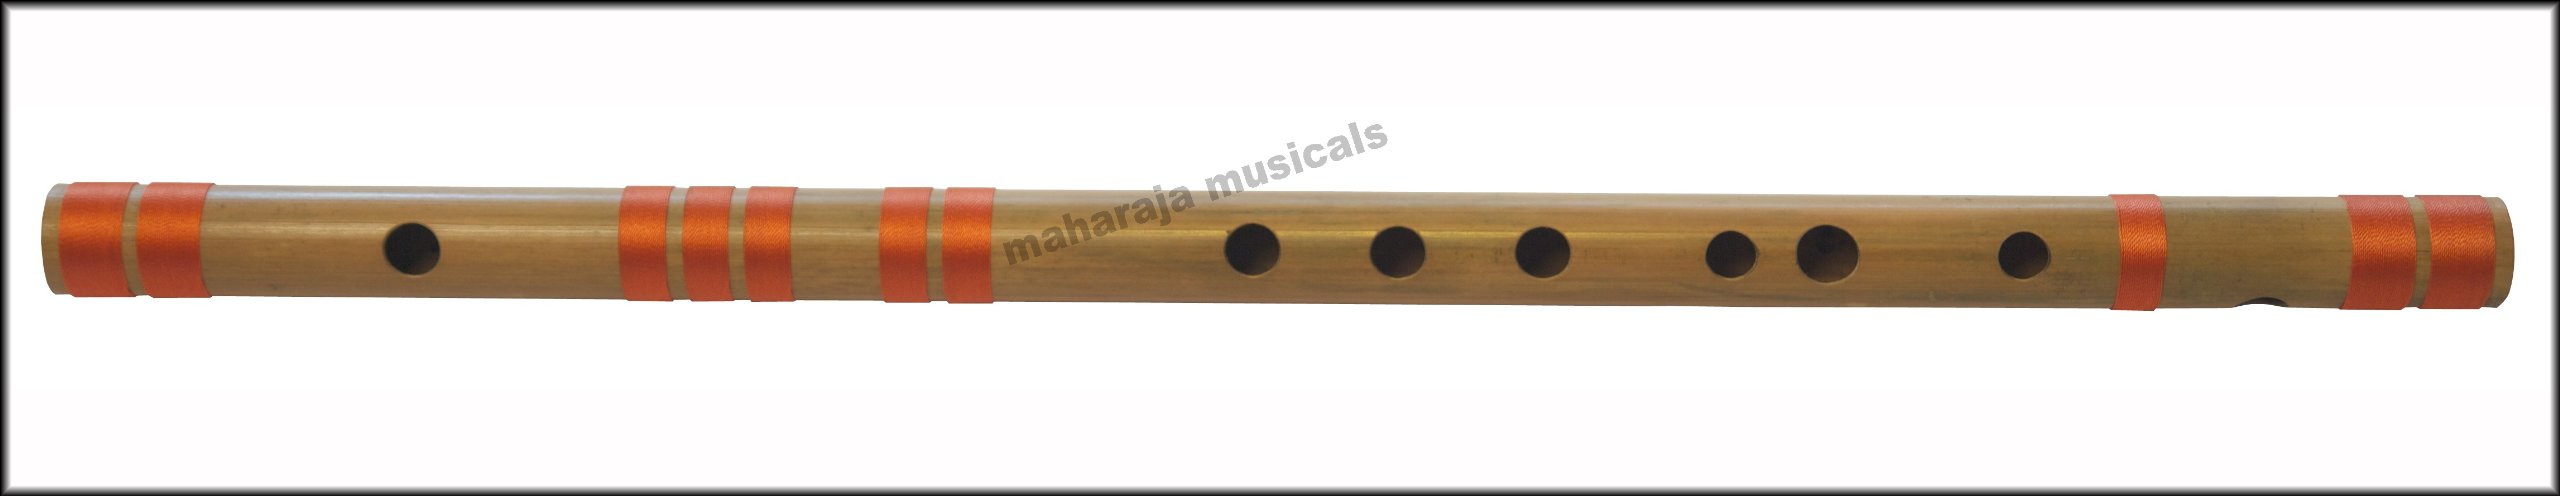 Bansuri, Scale C Natural Medium 19 Inches, Maharaja Musicals, Accurately Tuned, Recommended for Beginners, Hindustani Professional Bansuri Indian Flute, Nylon Pipe Bag Included (PDI-CEH)